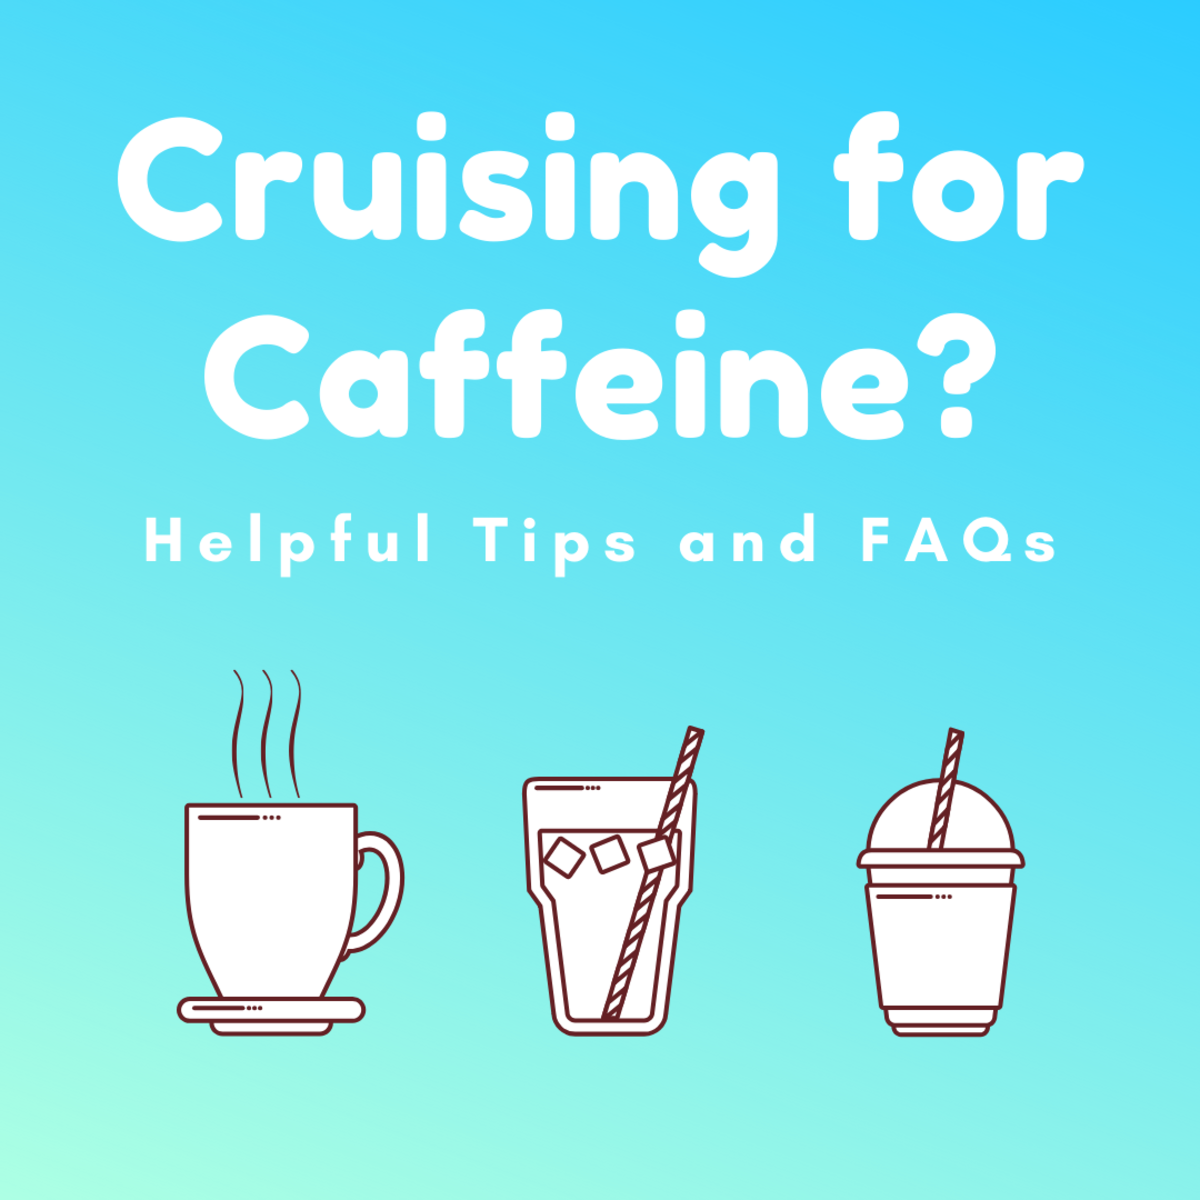 Where Can I Get the Best Cup of Coffee or Tea on a Cruise?